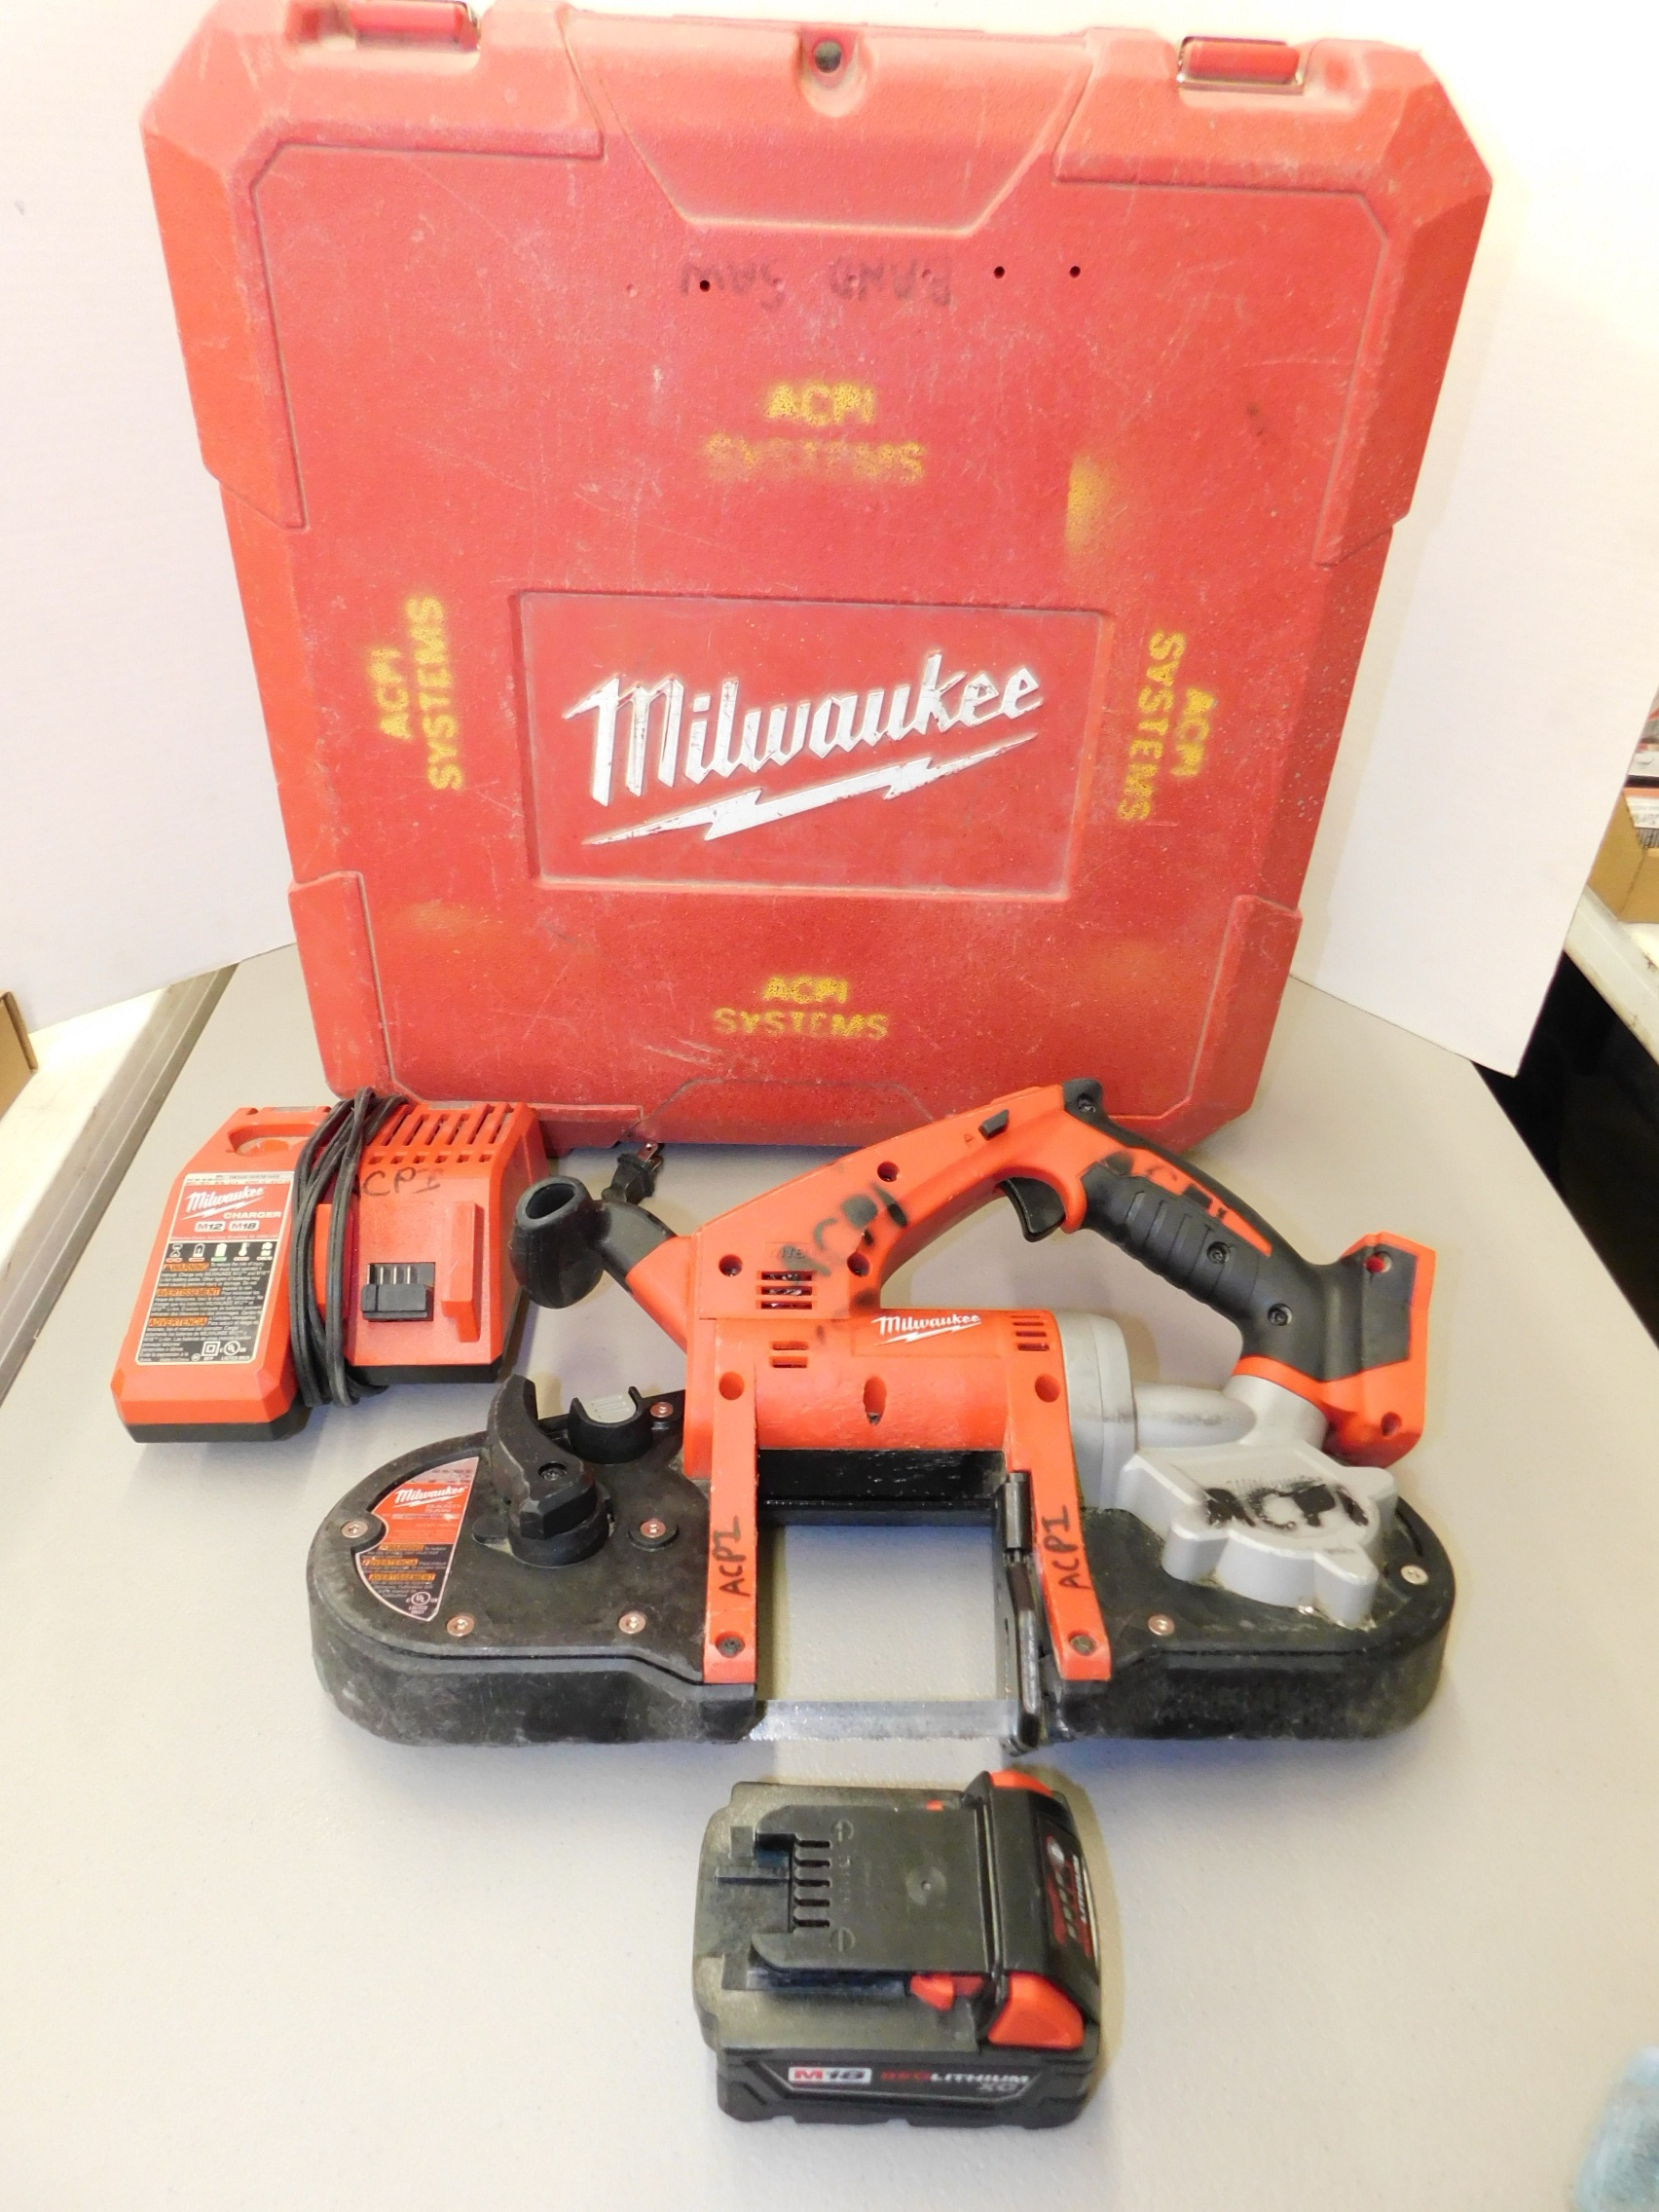 Lot 257 - Milwaukee Model 2629-20 18V Cordless Portable Bandsaw with Battery and Charger